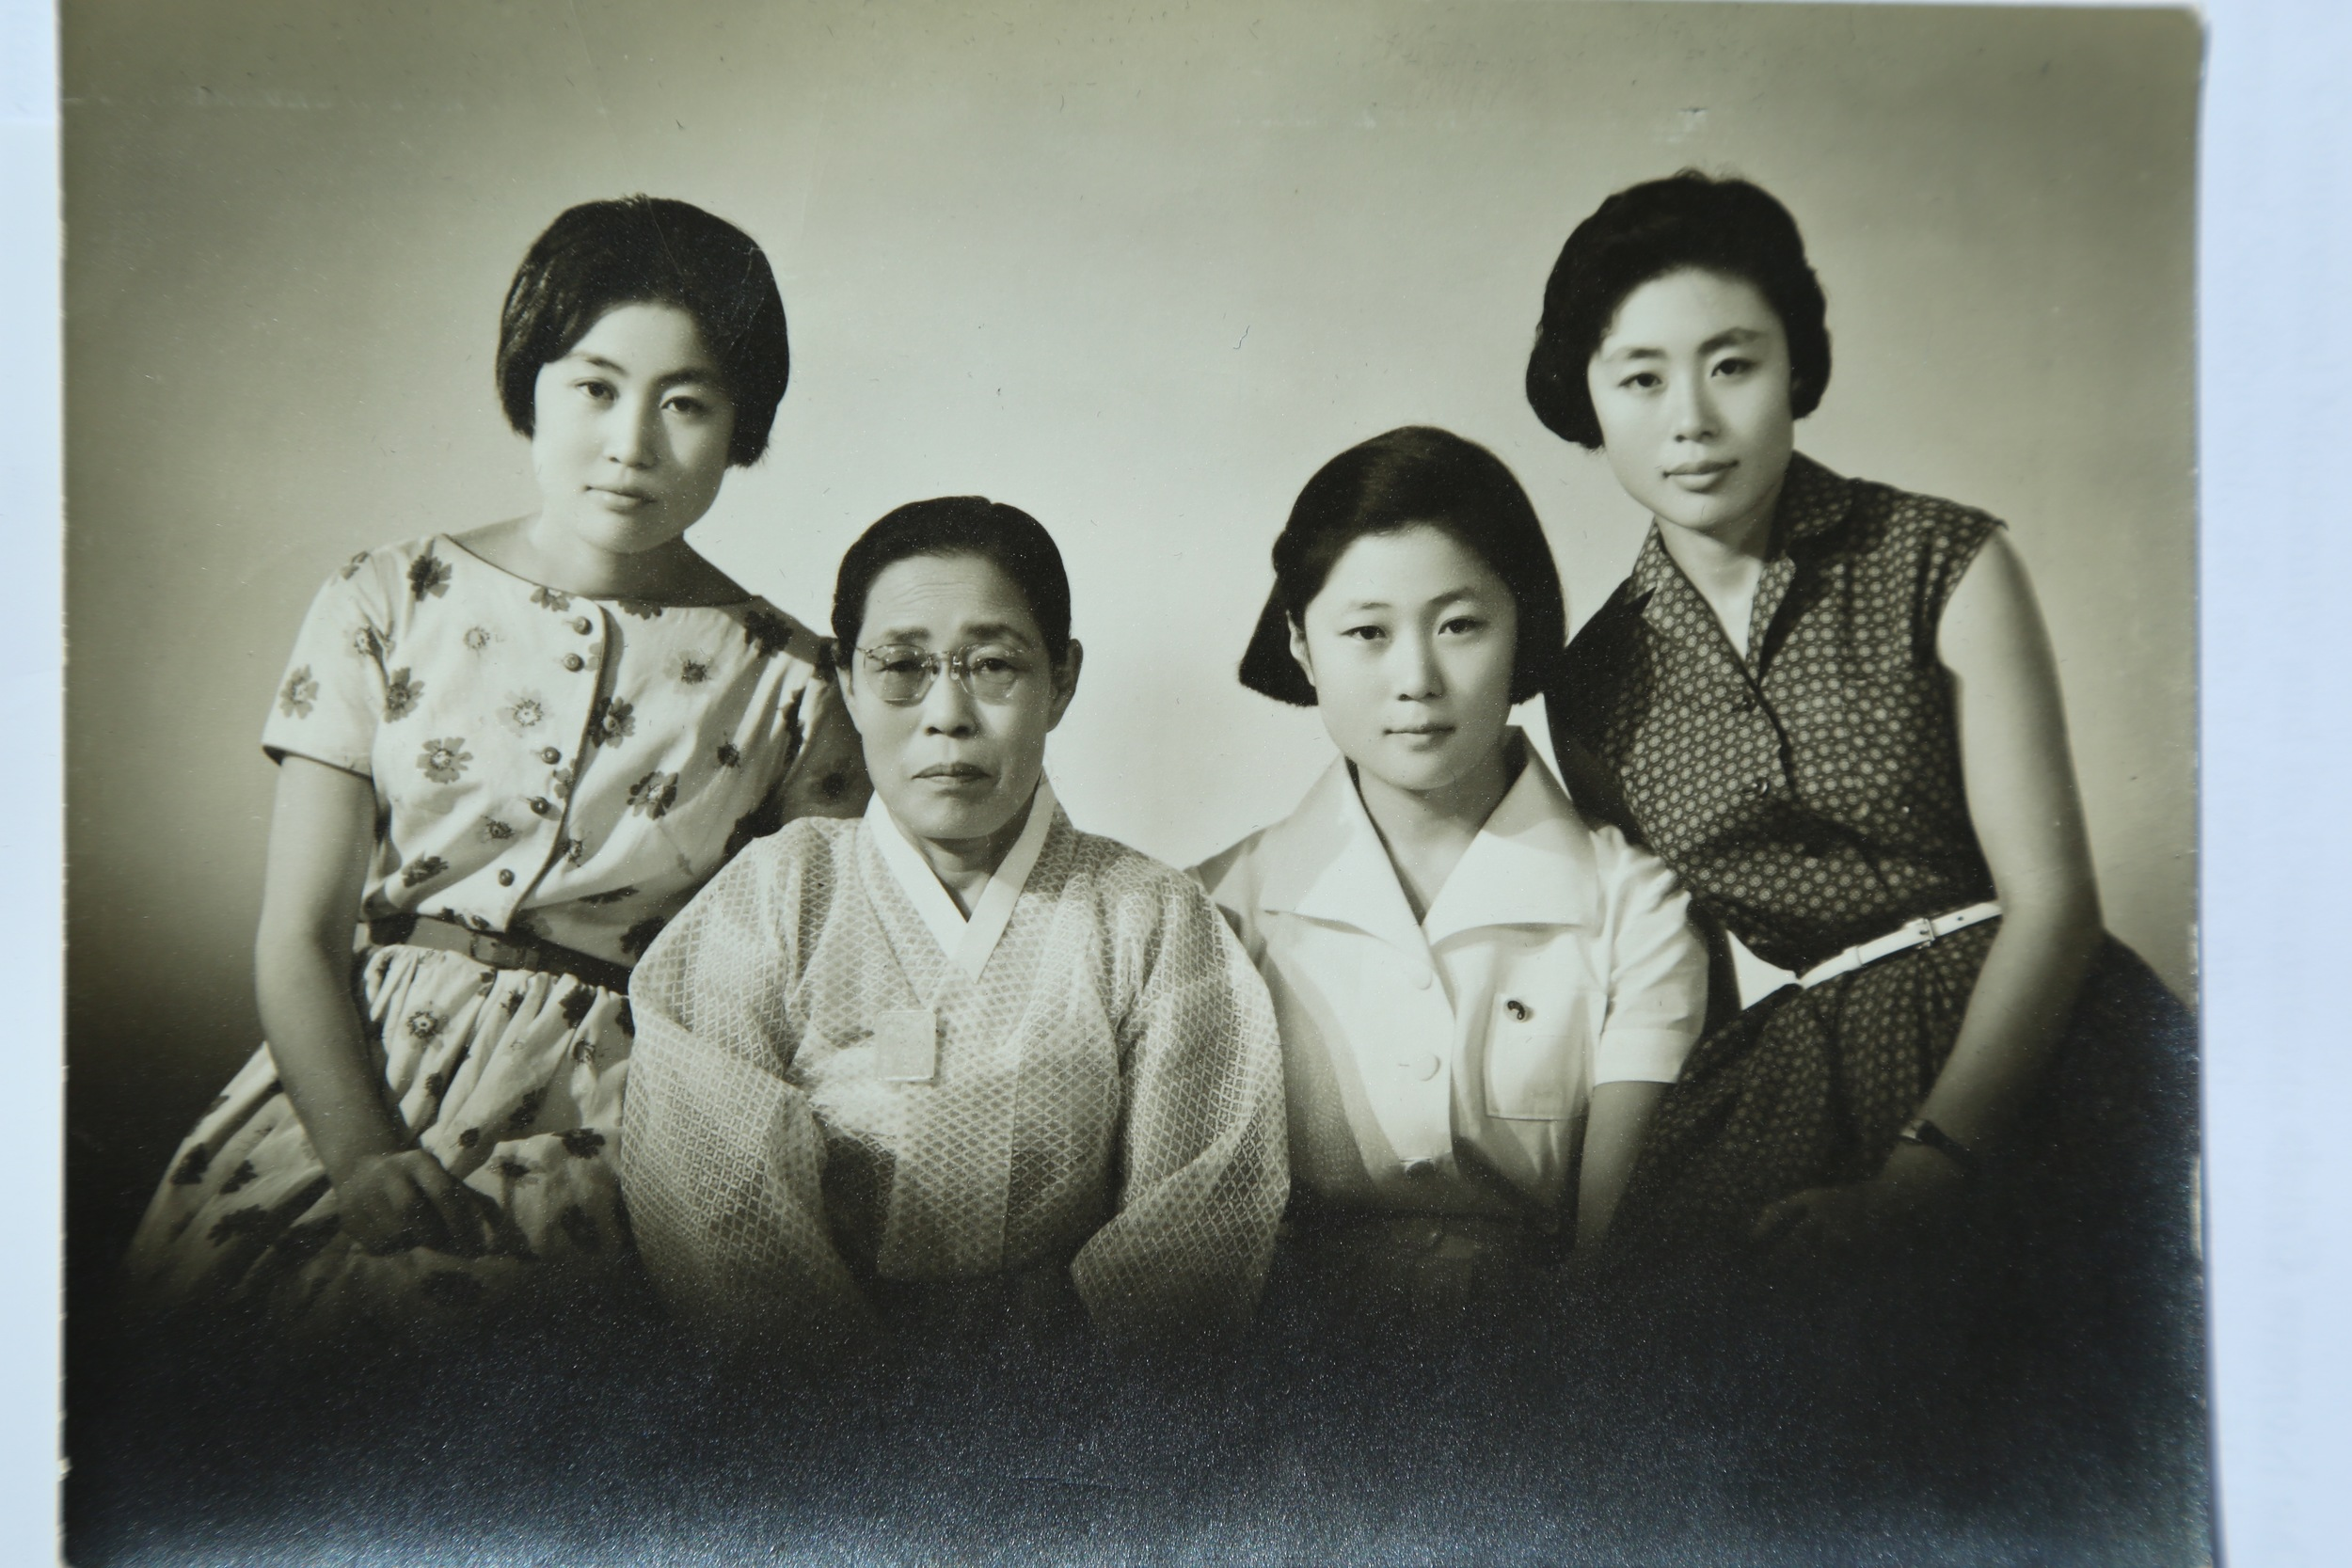 With her mom and two sisters in Seoul, late 1950s